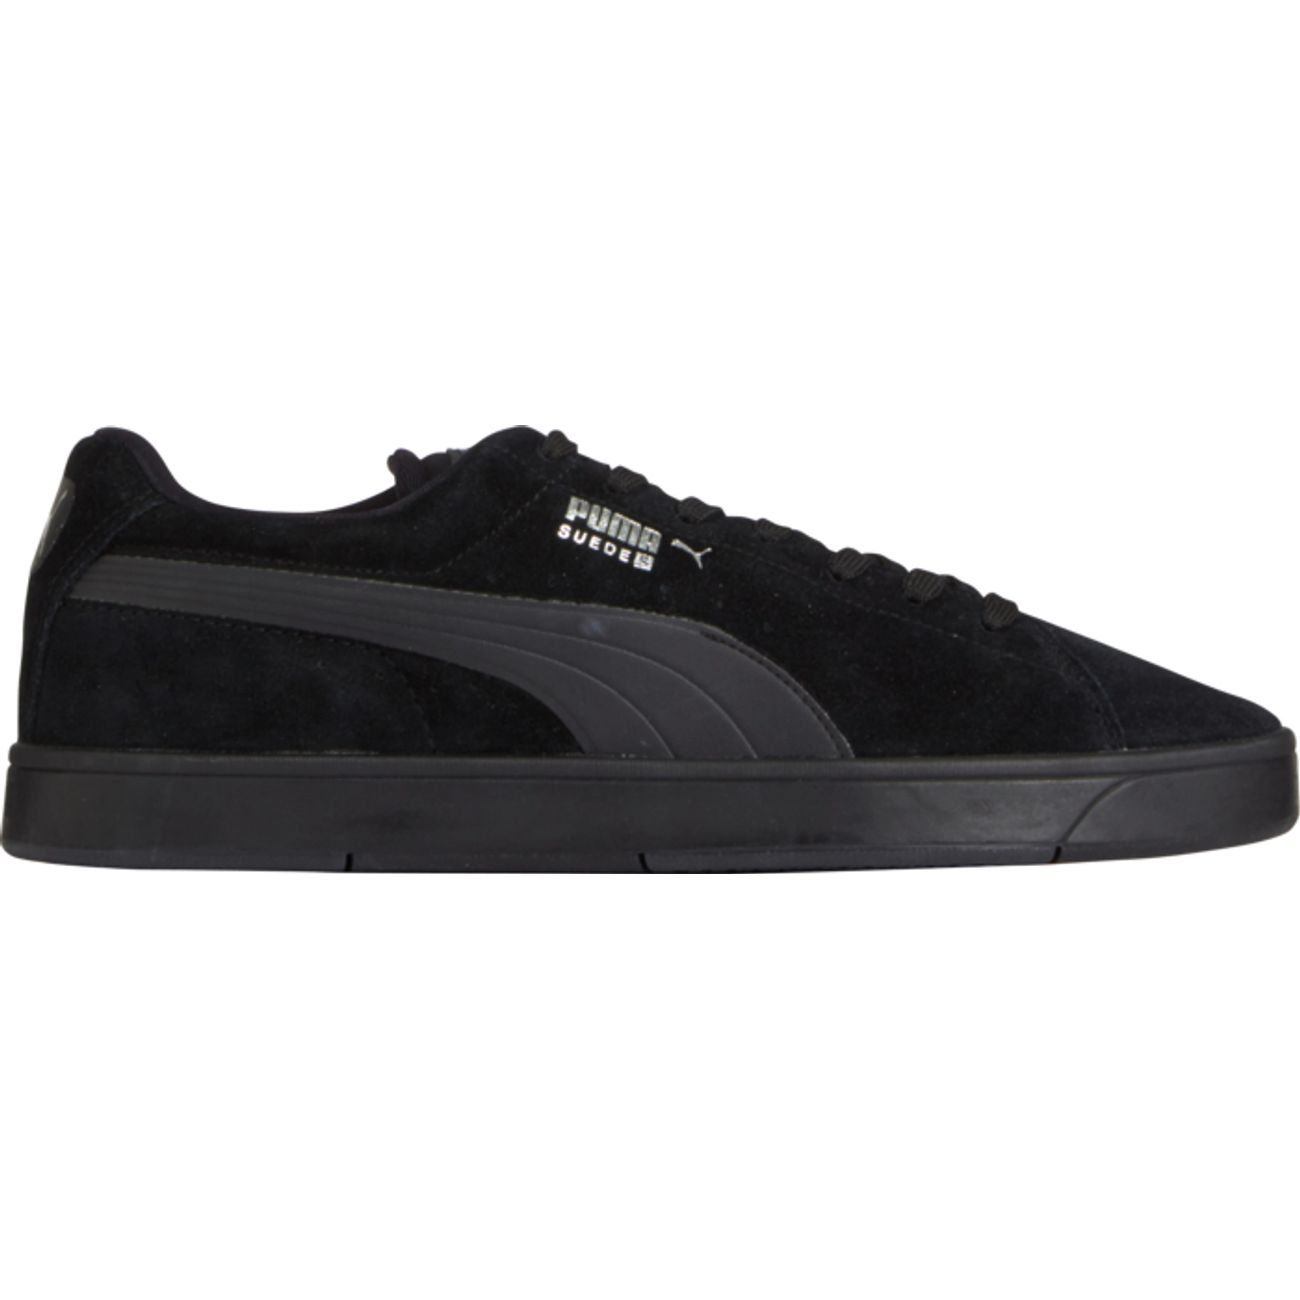 Puma Chaussure S Chaussure Suede Suede Homme Chaussure S Homme Puma ED9WIH2